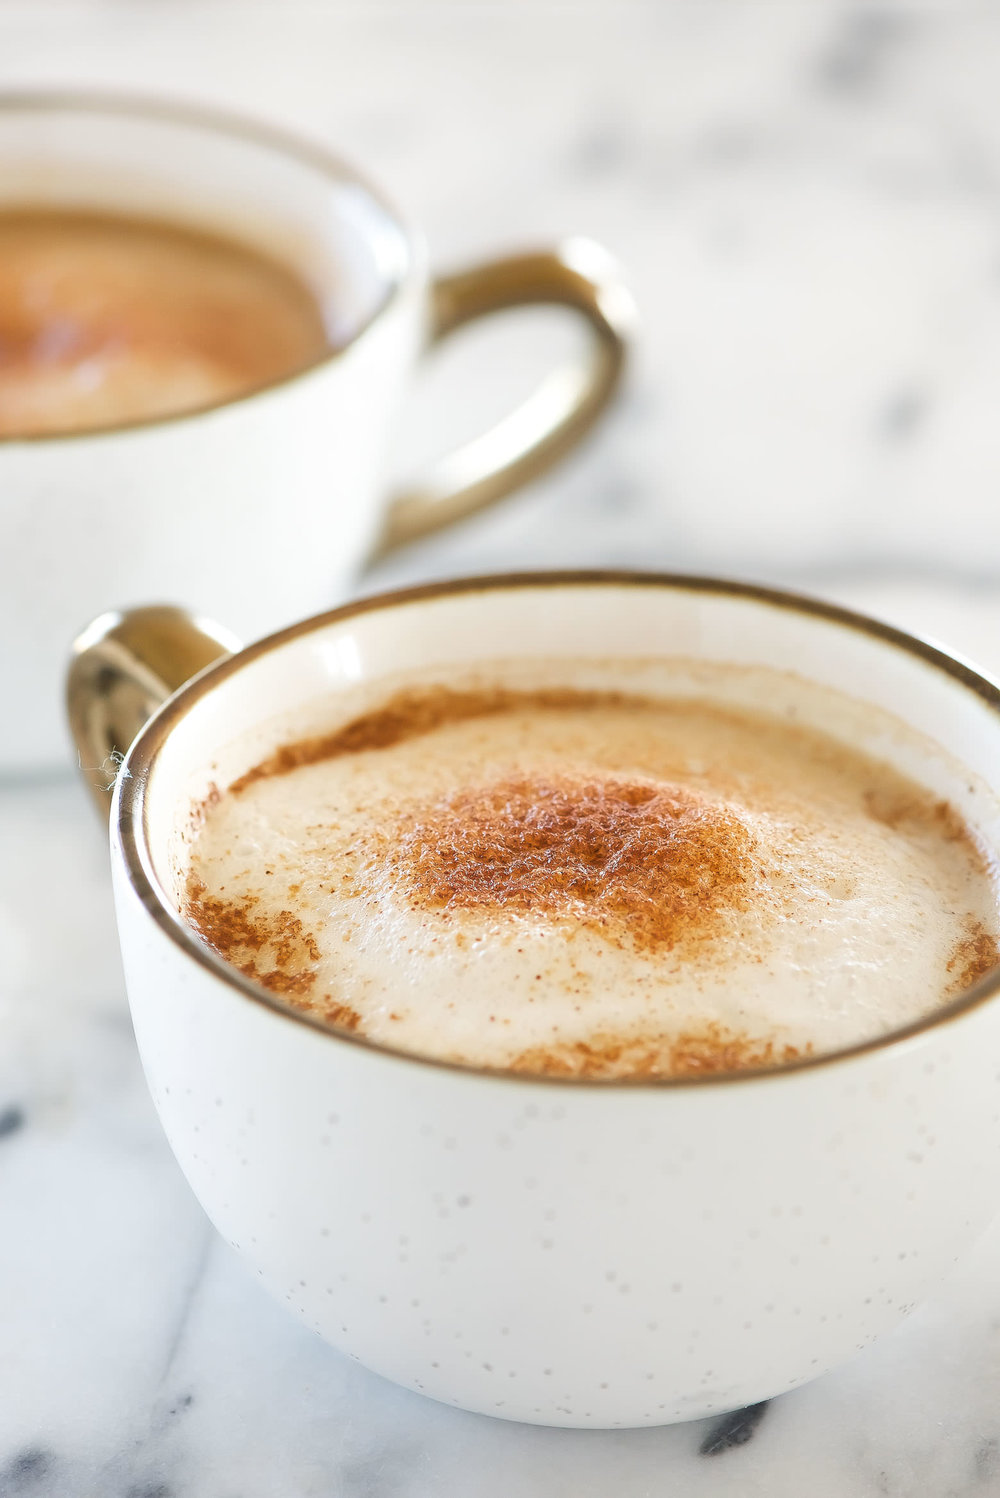 Homemade-Cinnamon-Dolce-Latte-4.jpg